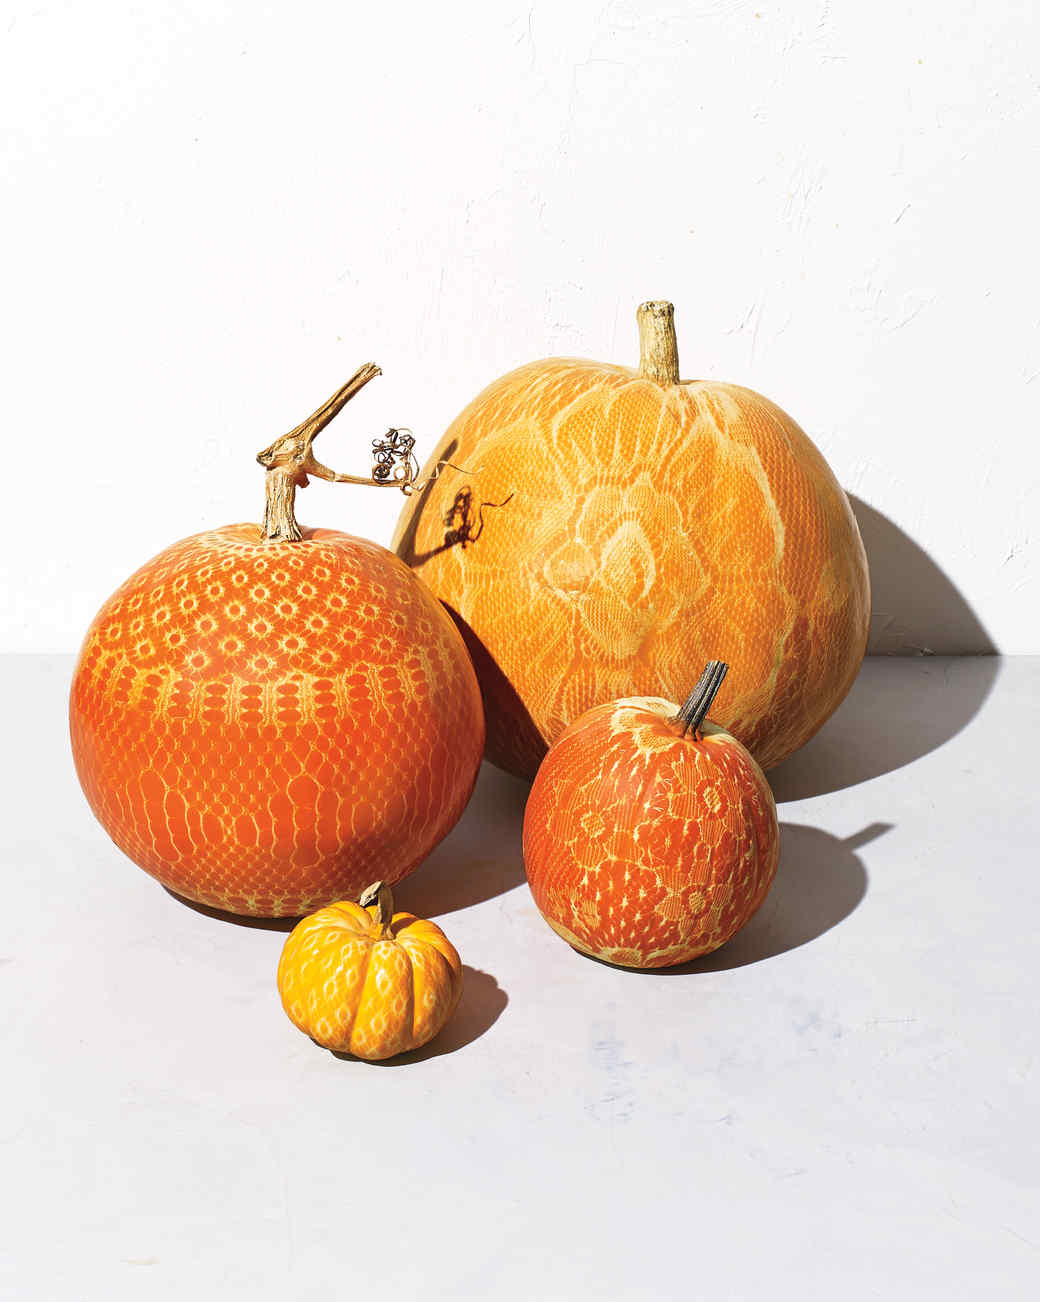 lacy-spray-paint-pumpkin-589-d111316.jpg